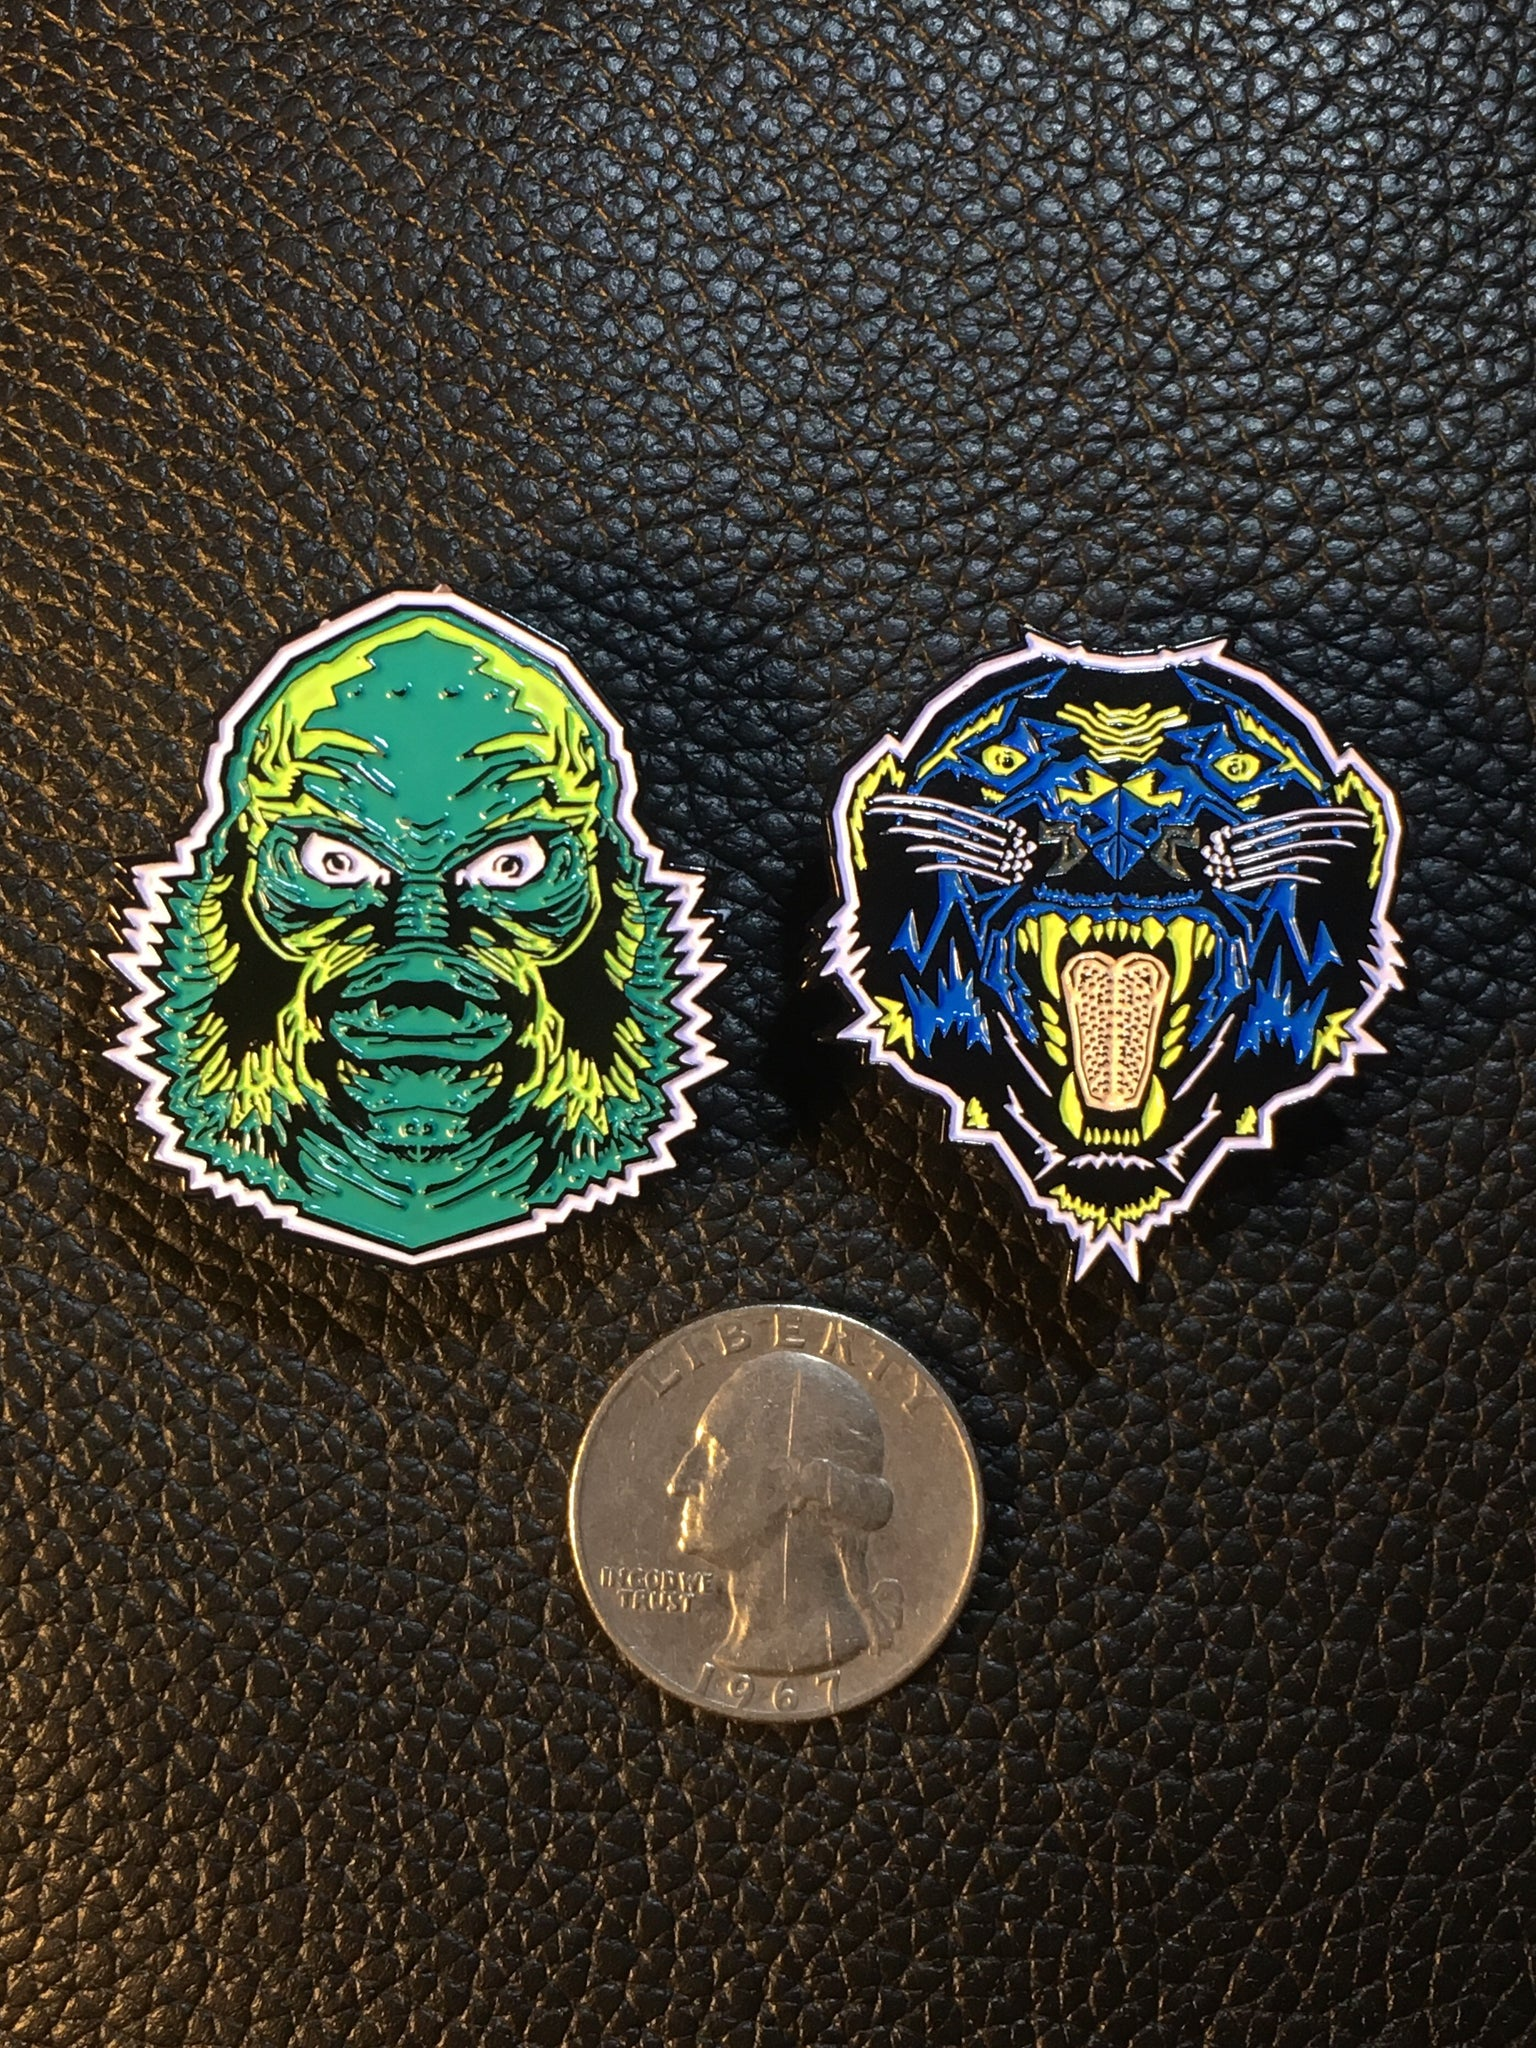 Garbage Made Enamel Pins